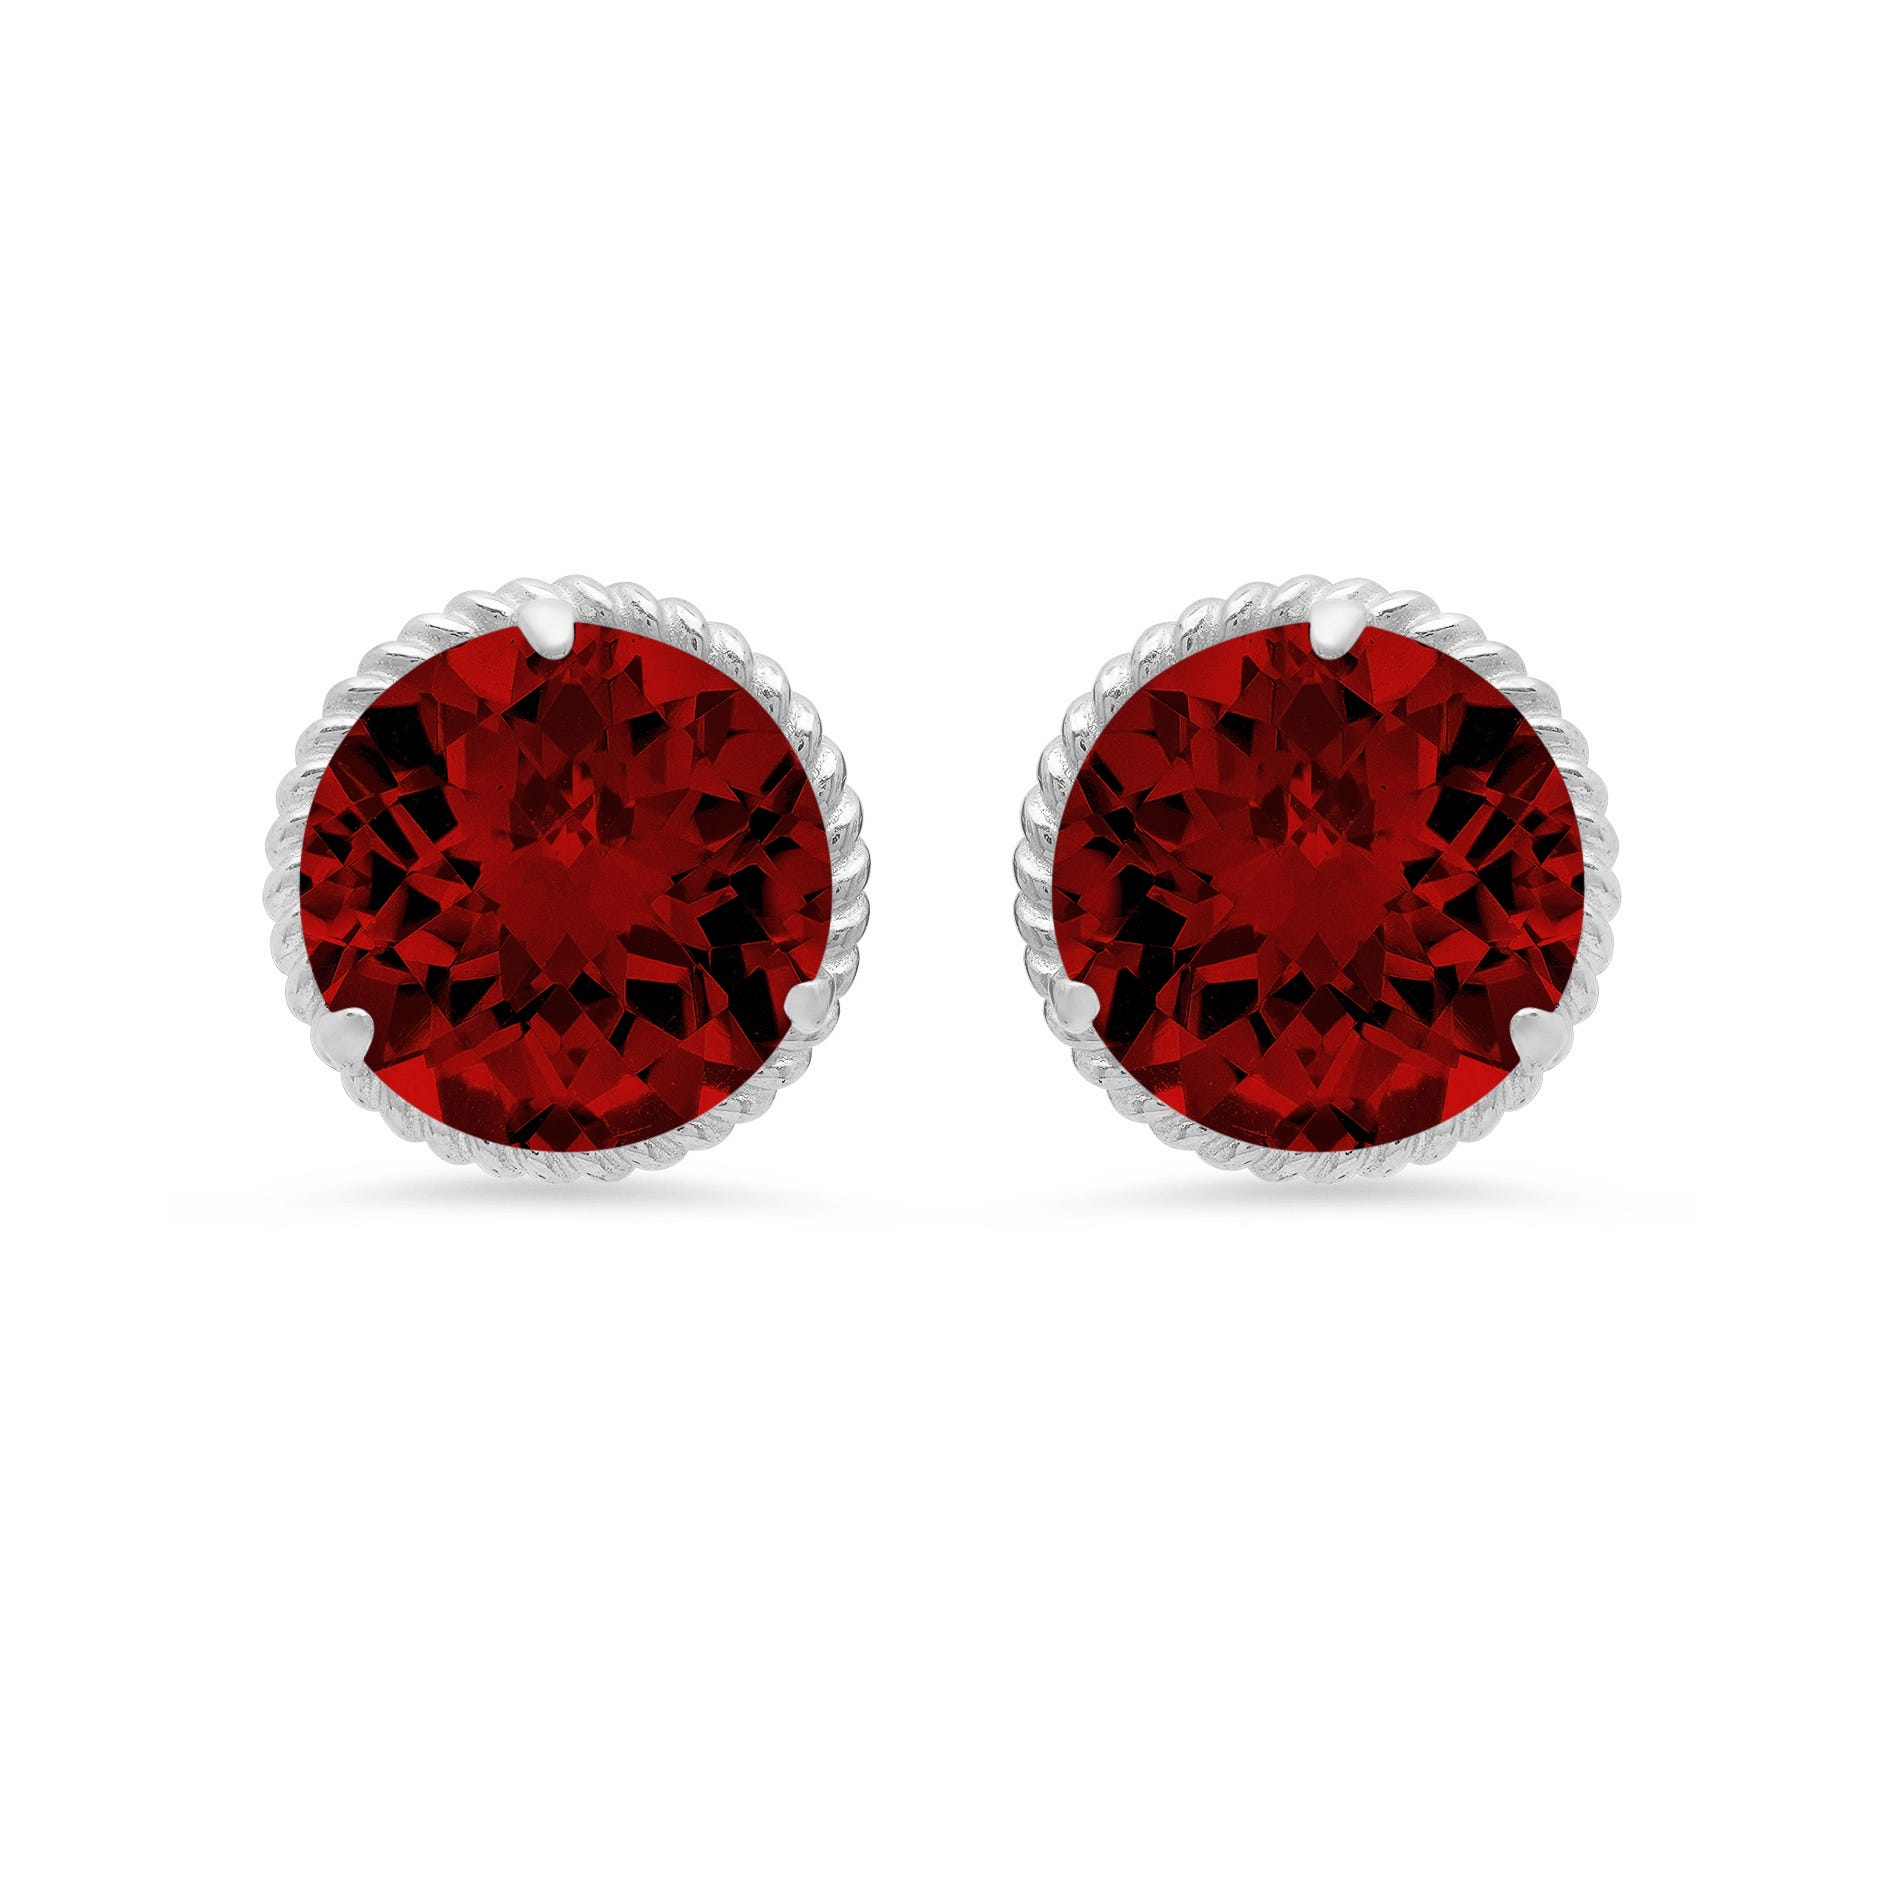 Garnet Roped Halo Stud Earrings in 14k White Gold